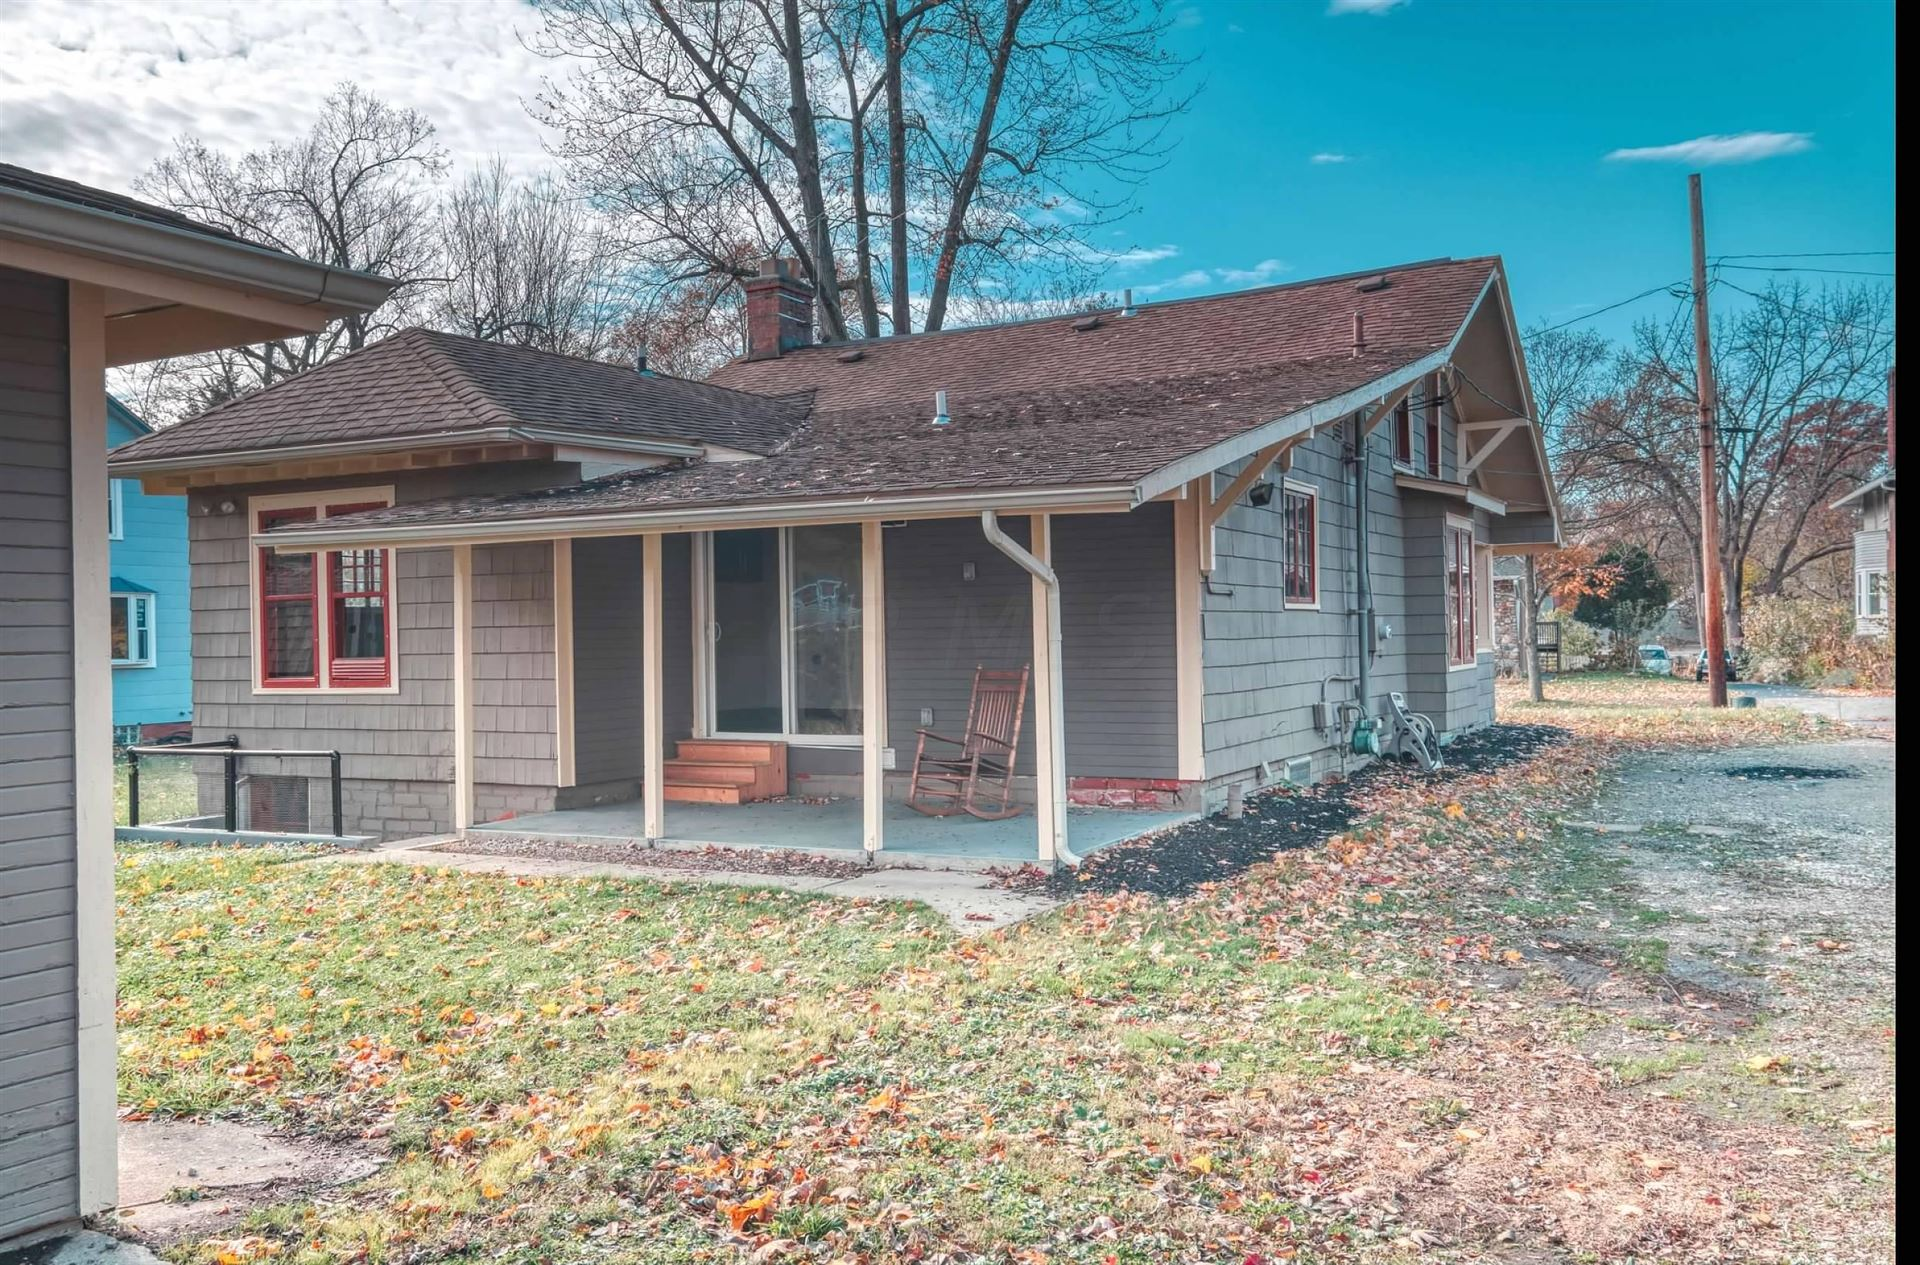 Photo of 108 S Grove Street, Westerville, OH 43081 (MLS # 221040164)